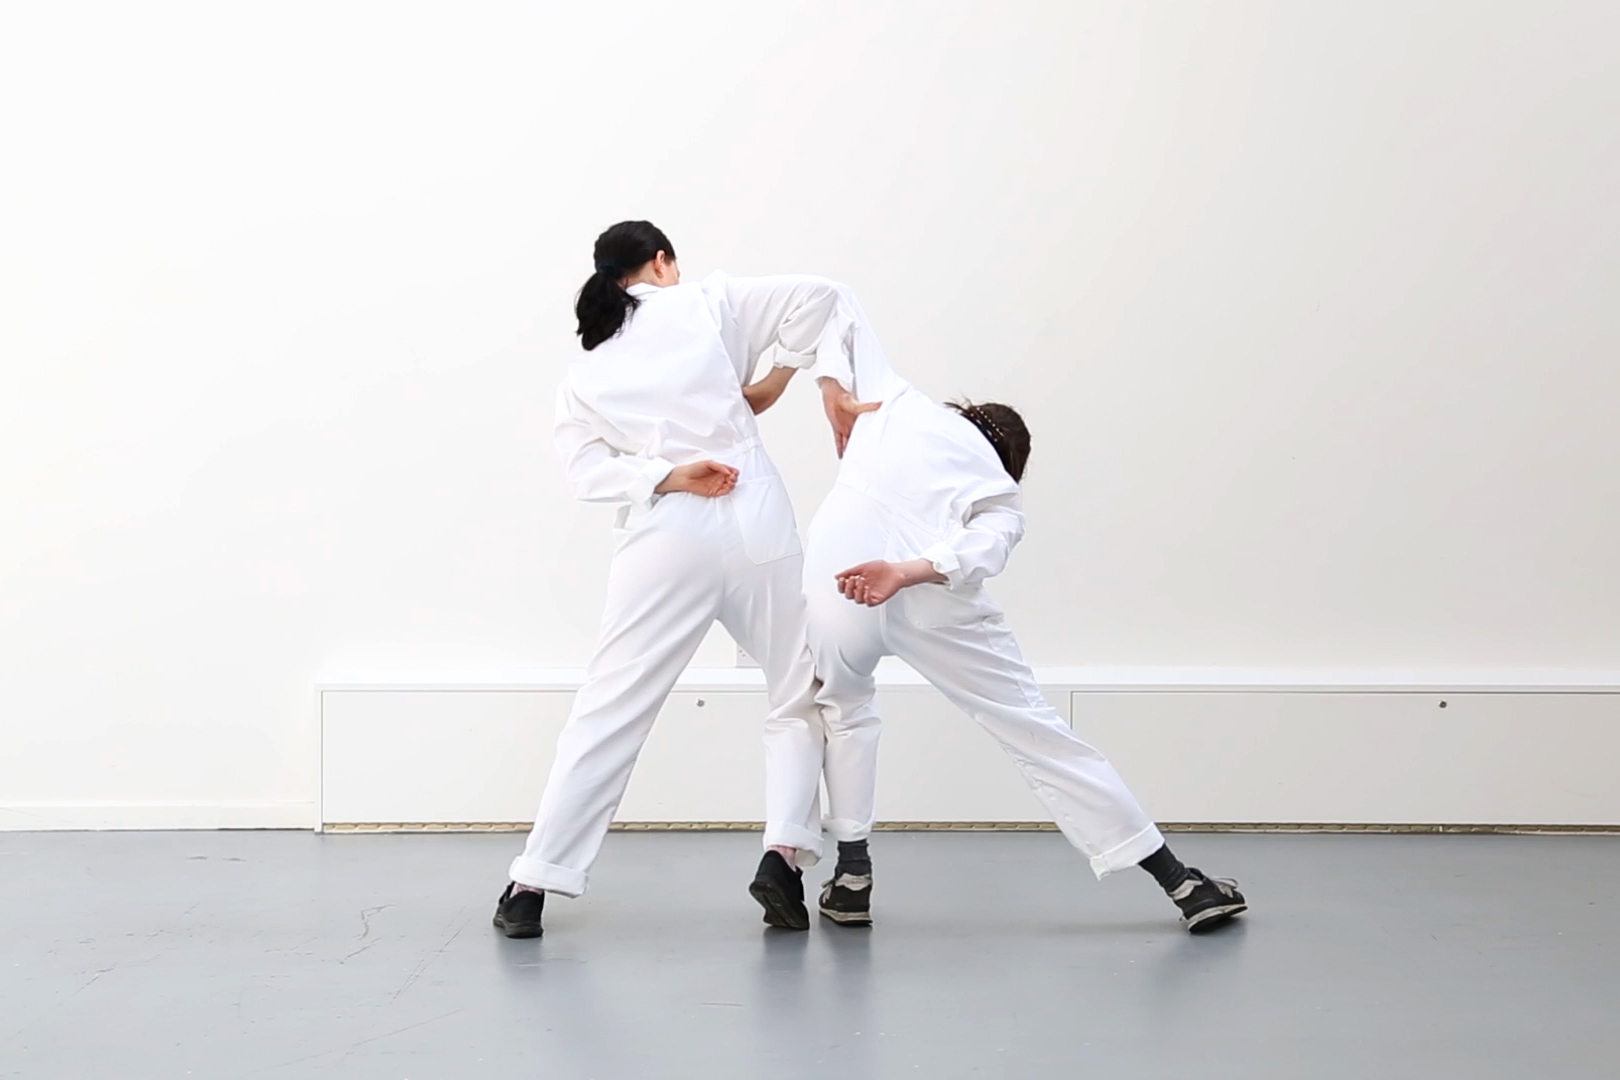 'Circuit Training  (exercises in self-doubt)'  Stills from rehearsal, 2018.  The body as material and body as apparatus. 'Circuit Training' is a live choreographic work, which focuses on fragmented (parts of the body) via delineated exercise-style segments:   score: [...] The body; (knee joints, elbow levers, hip-bones)    — fractious fragments    The circuit; (winding, weaving, coiling) — suturing them back together   In conversation with  To be confirmed: exercises in self-doubt  — a collection of three essays, ('Morphology of the Hit', 'Circuit Training' & 'Body Language') written by the artist and published on the occasion of The Royal College of Art Degree Show, 2018.